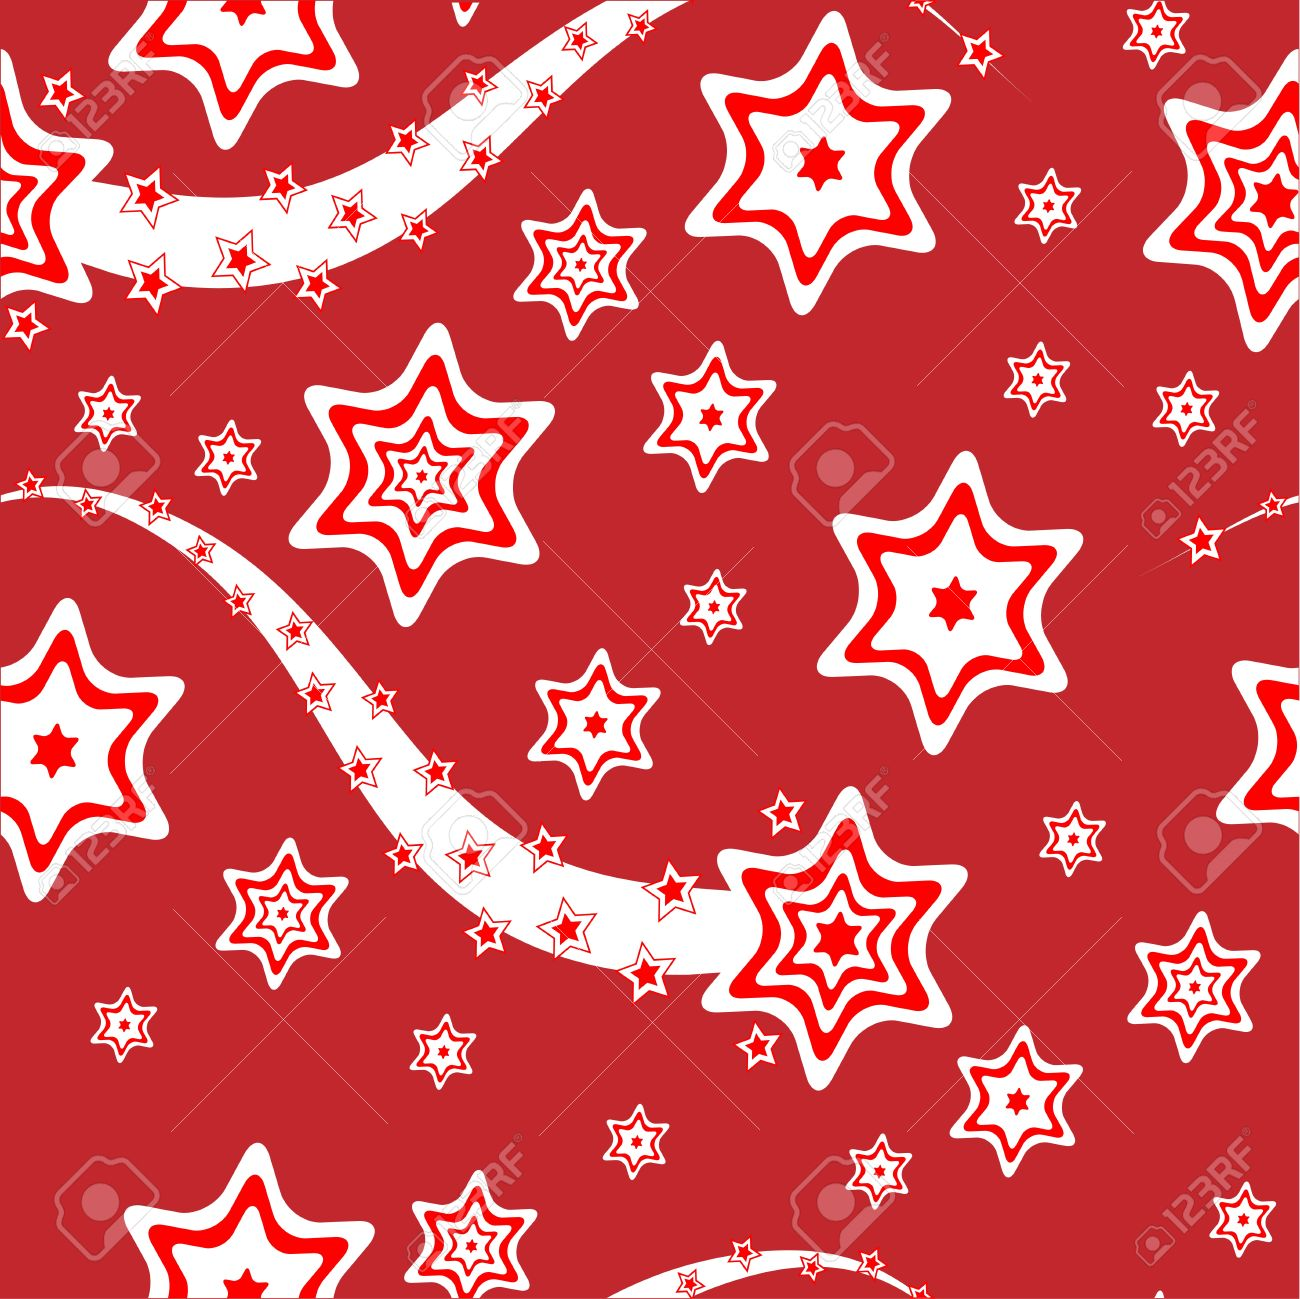 Christmas wrapping paper or background vector illustration.